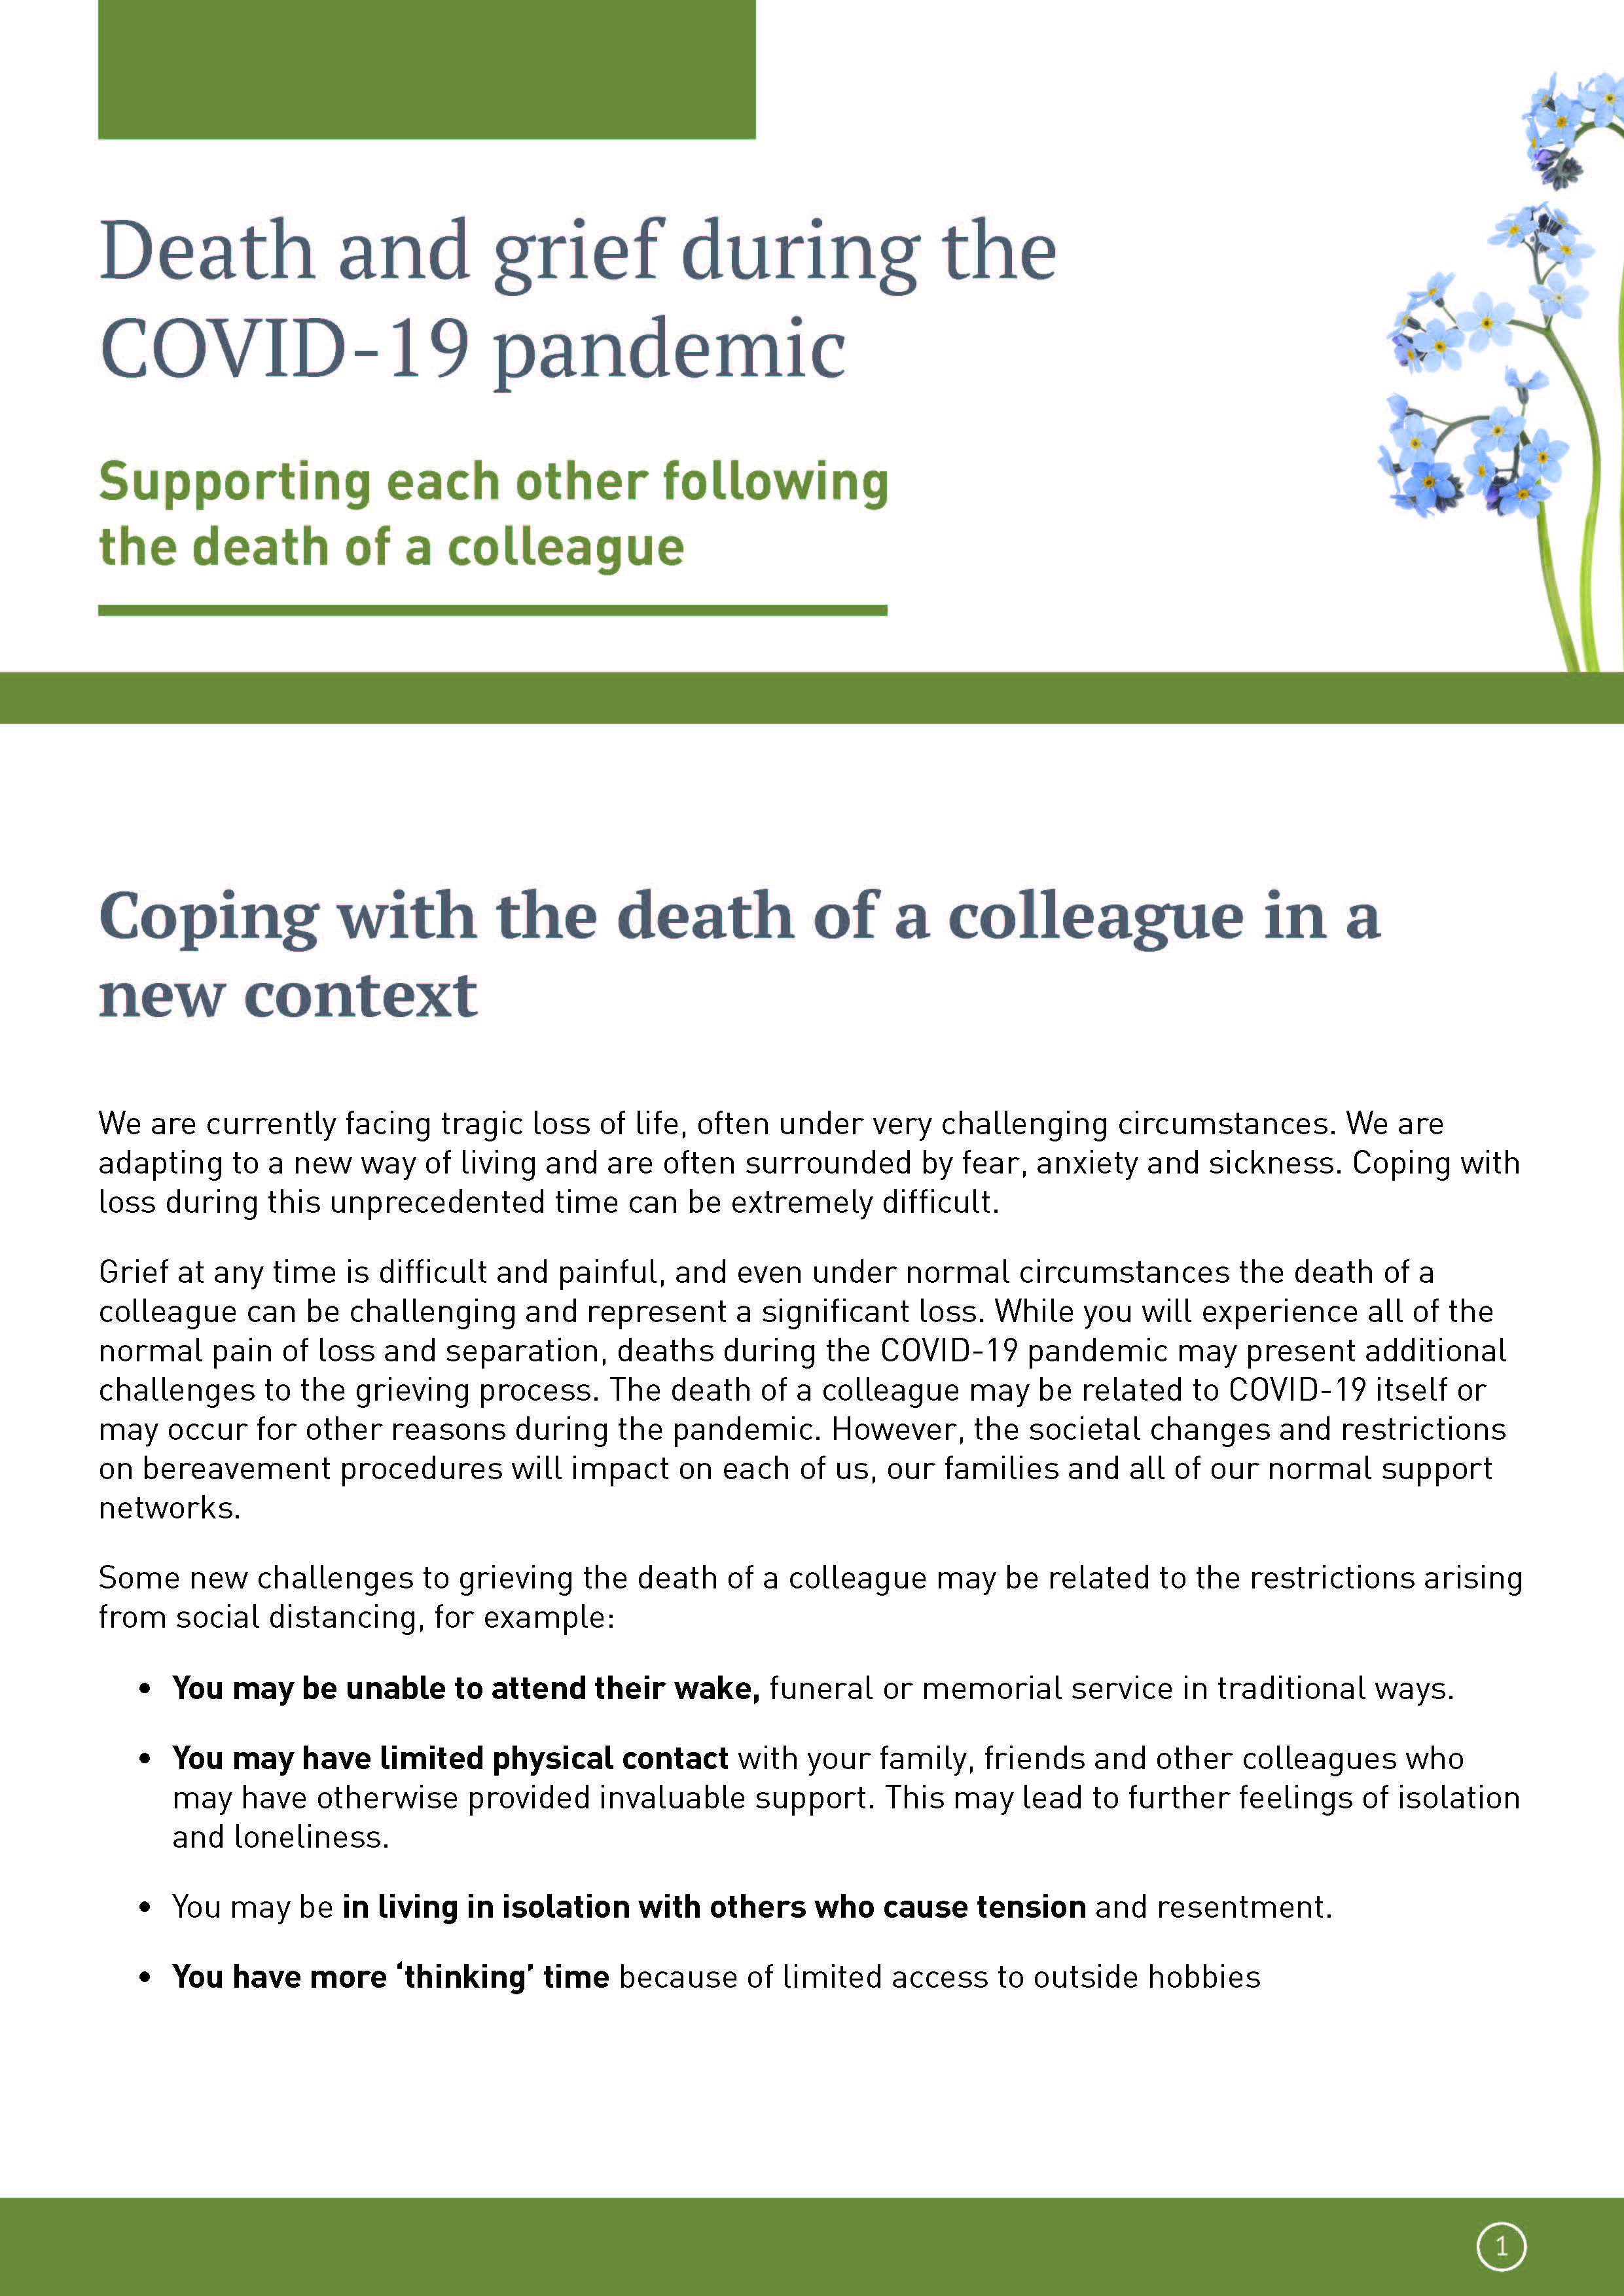 Cover of guidance on coping with the death of a colleague